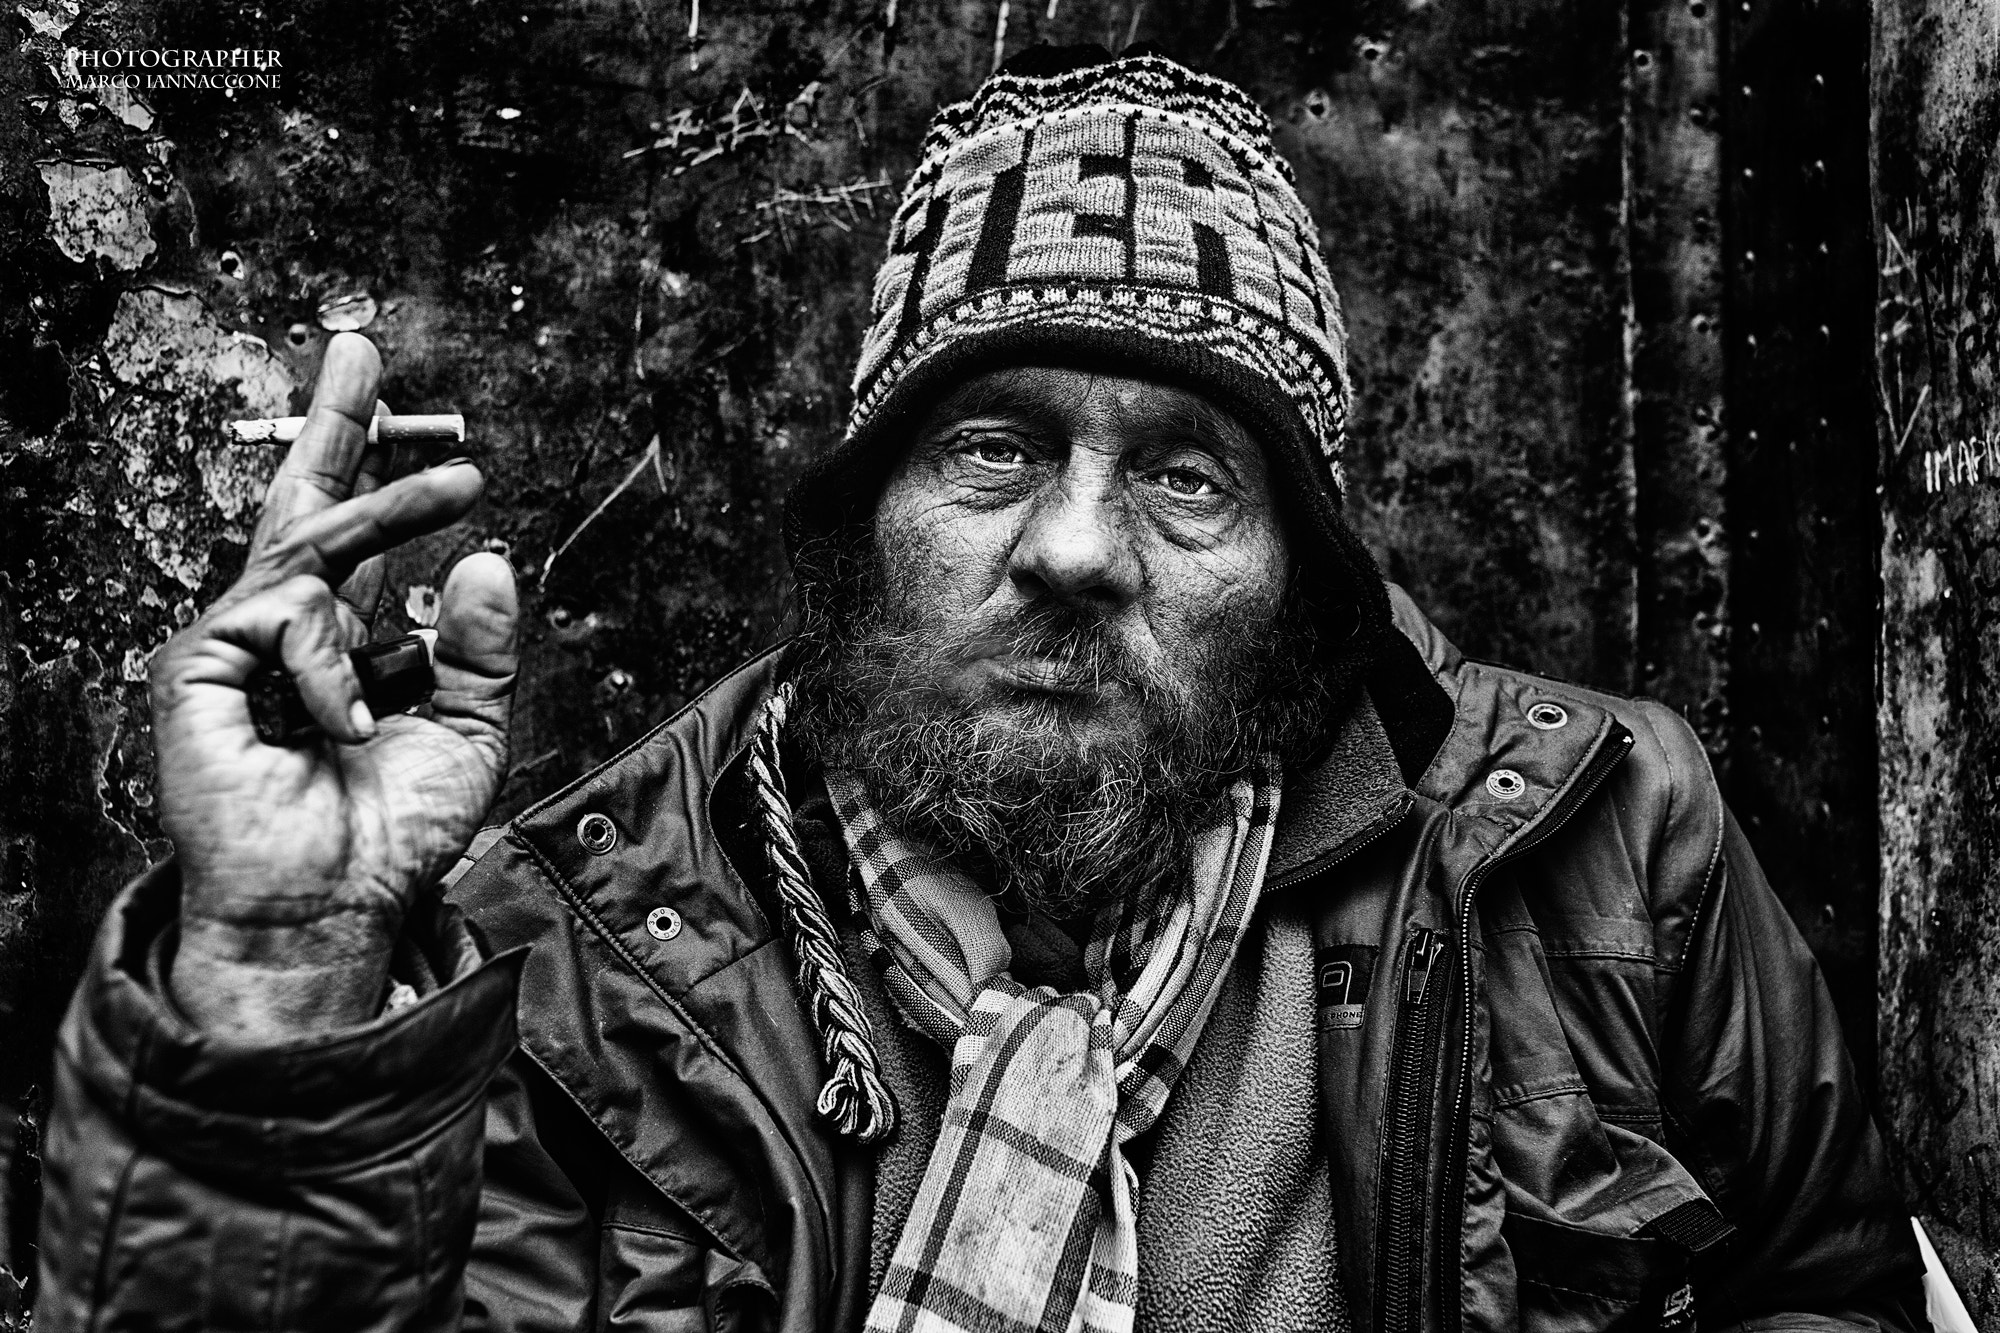 Photograph Homeless by Marco Iannaccone on 500px